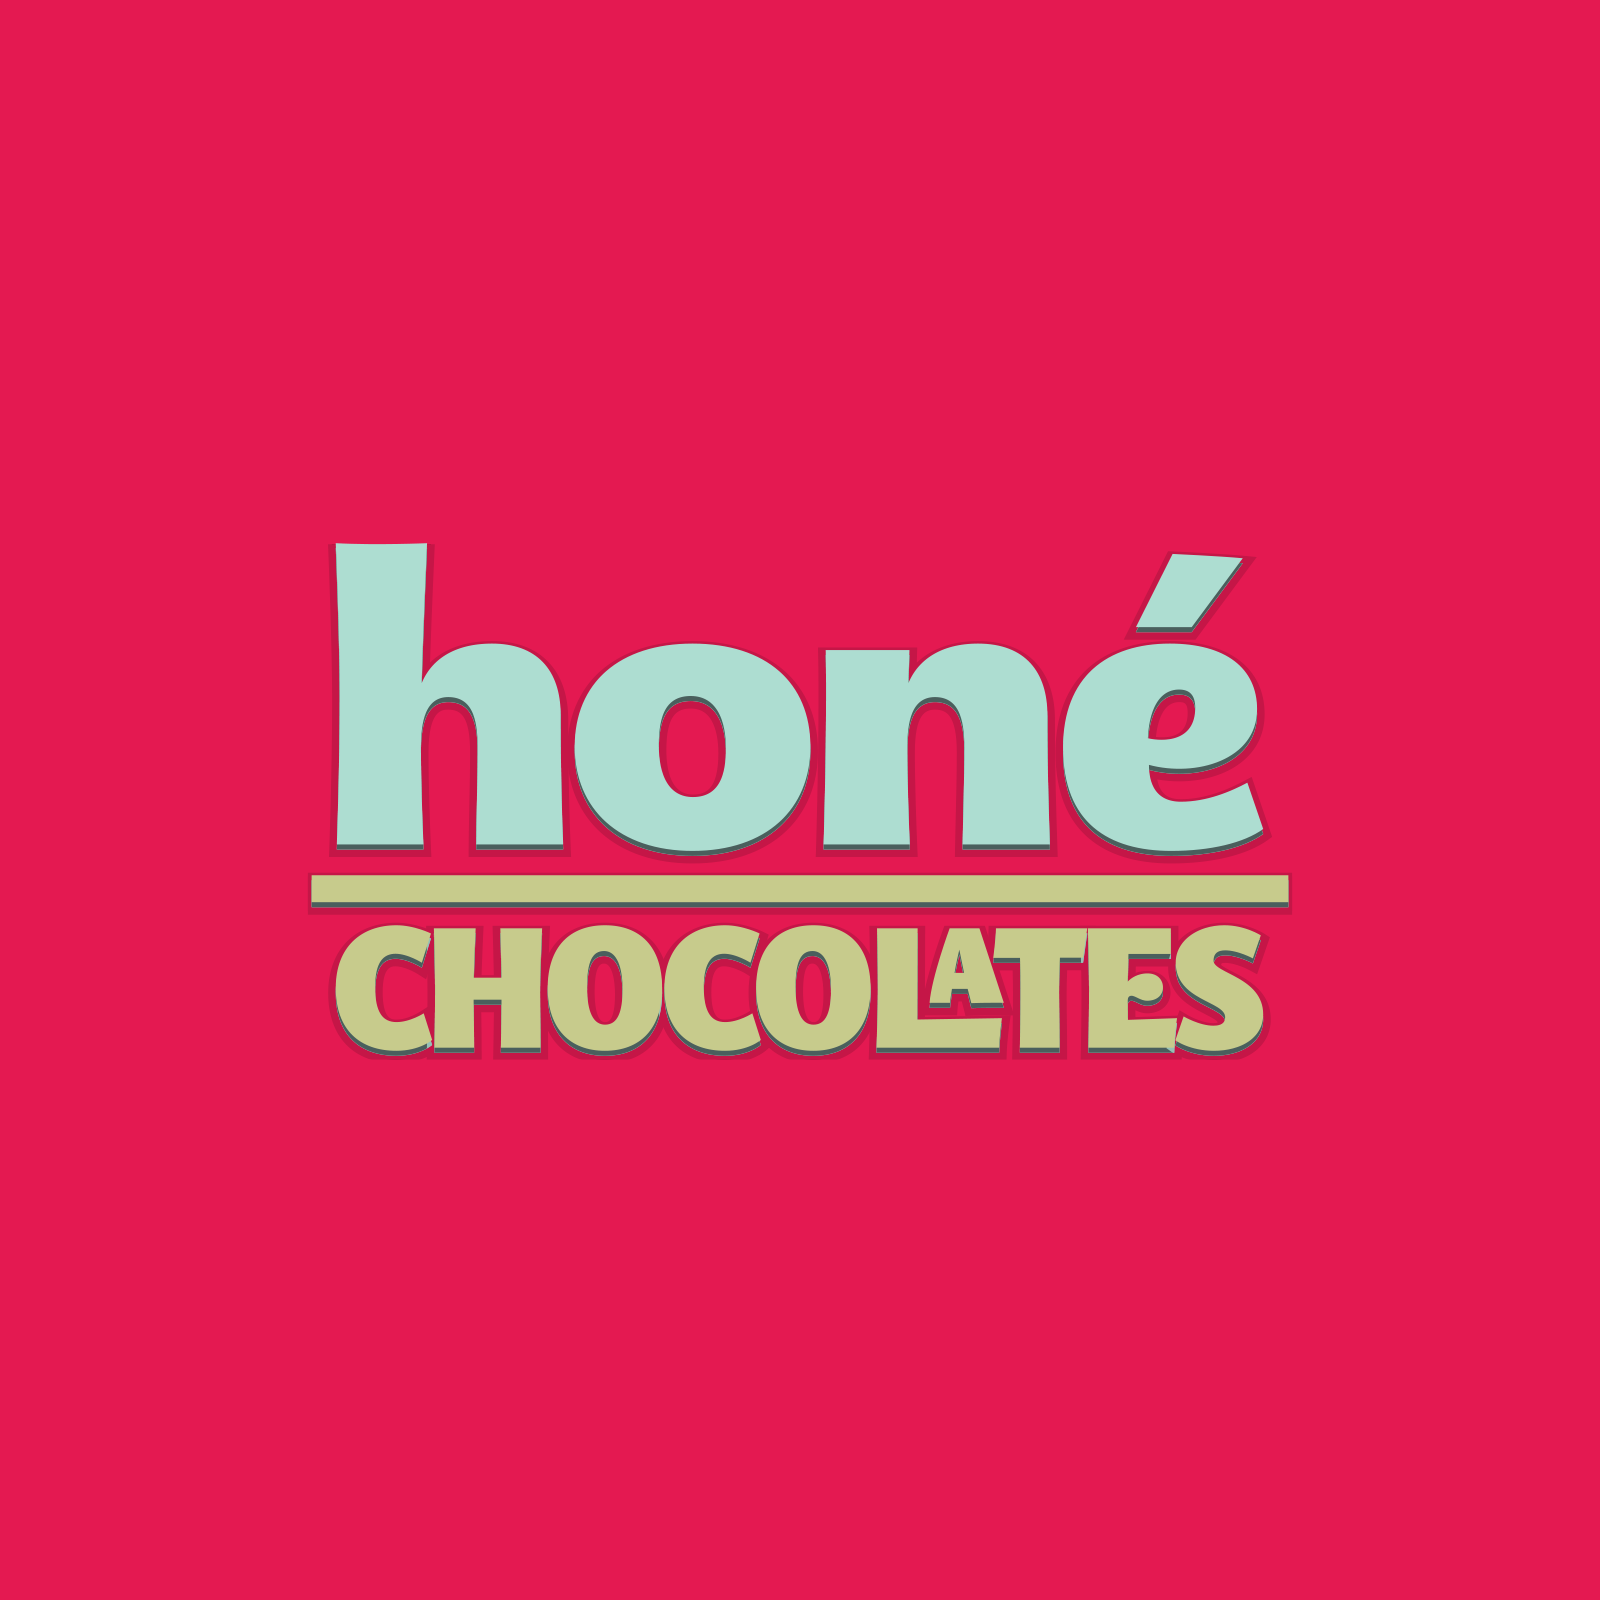 Honé Chocolates - Logo